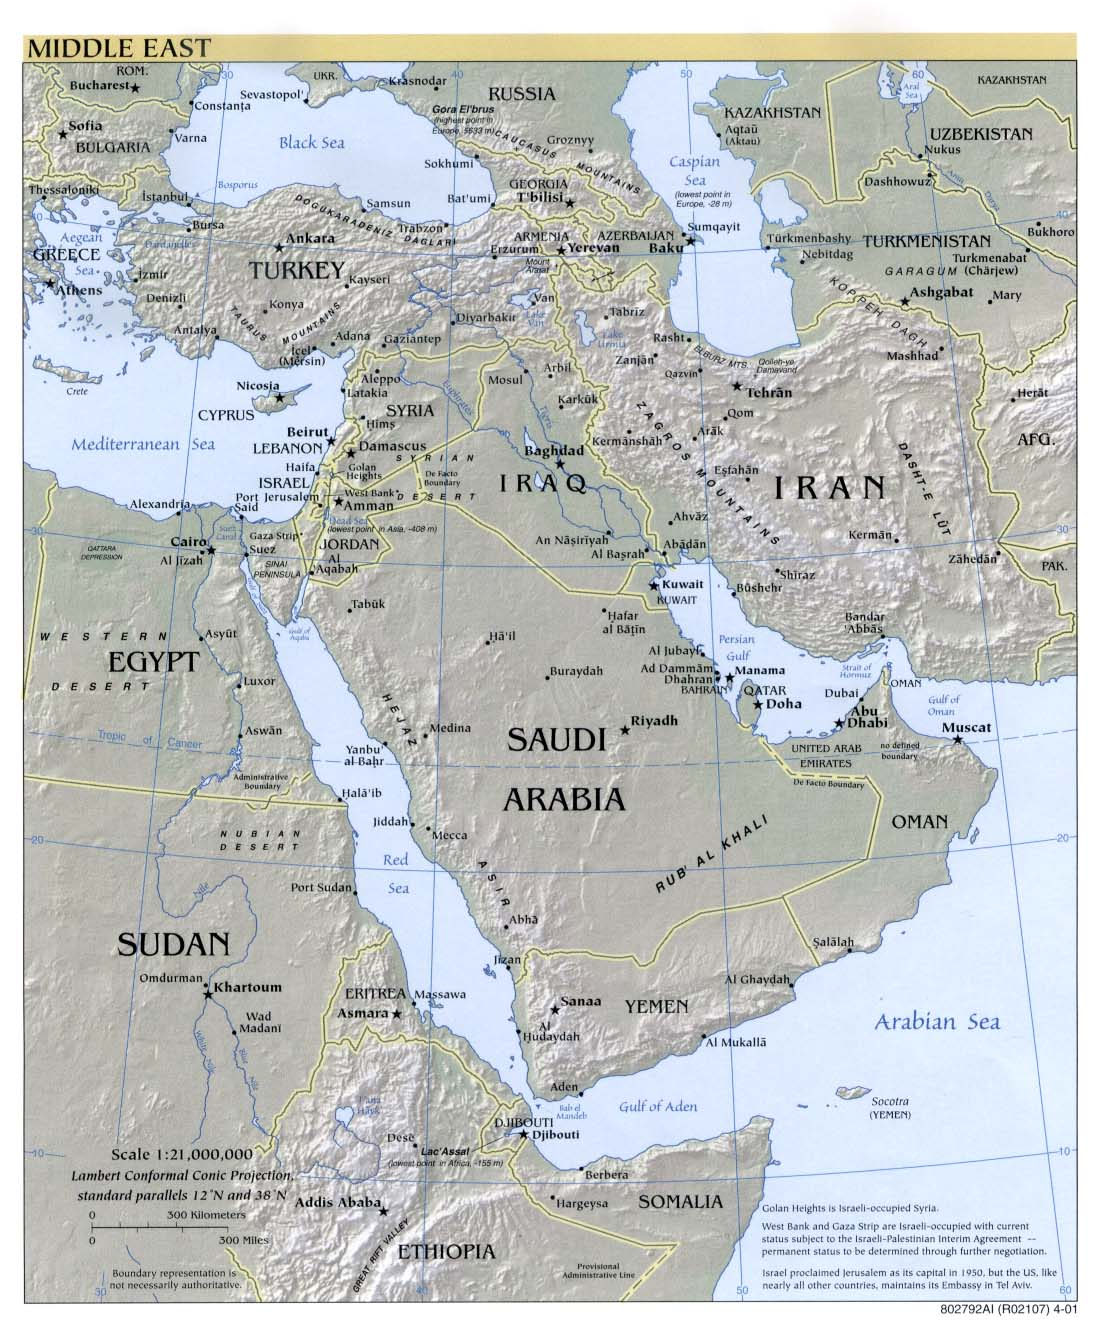 Global Connections . Mapping the Middle East | PBS on